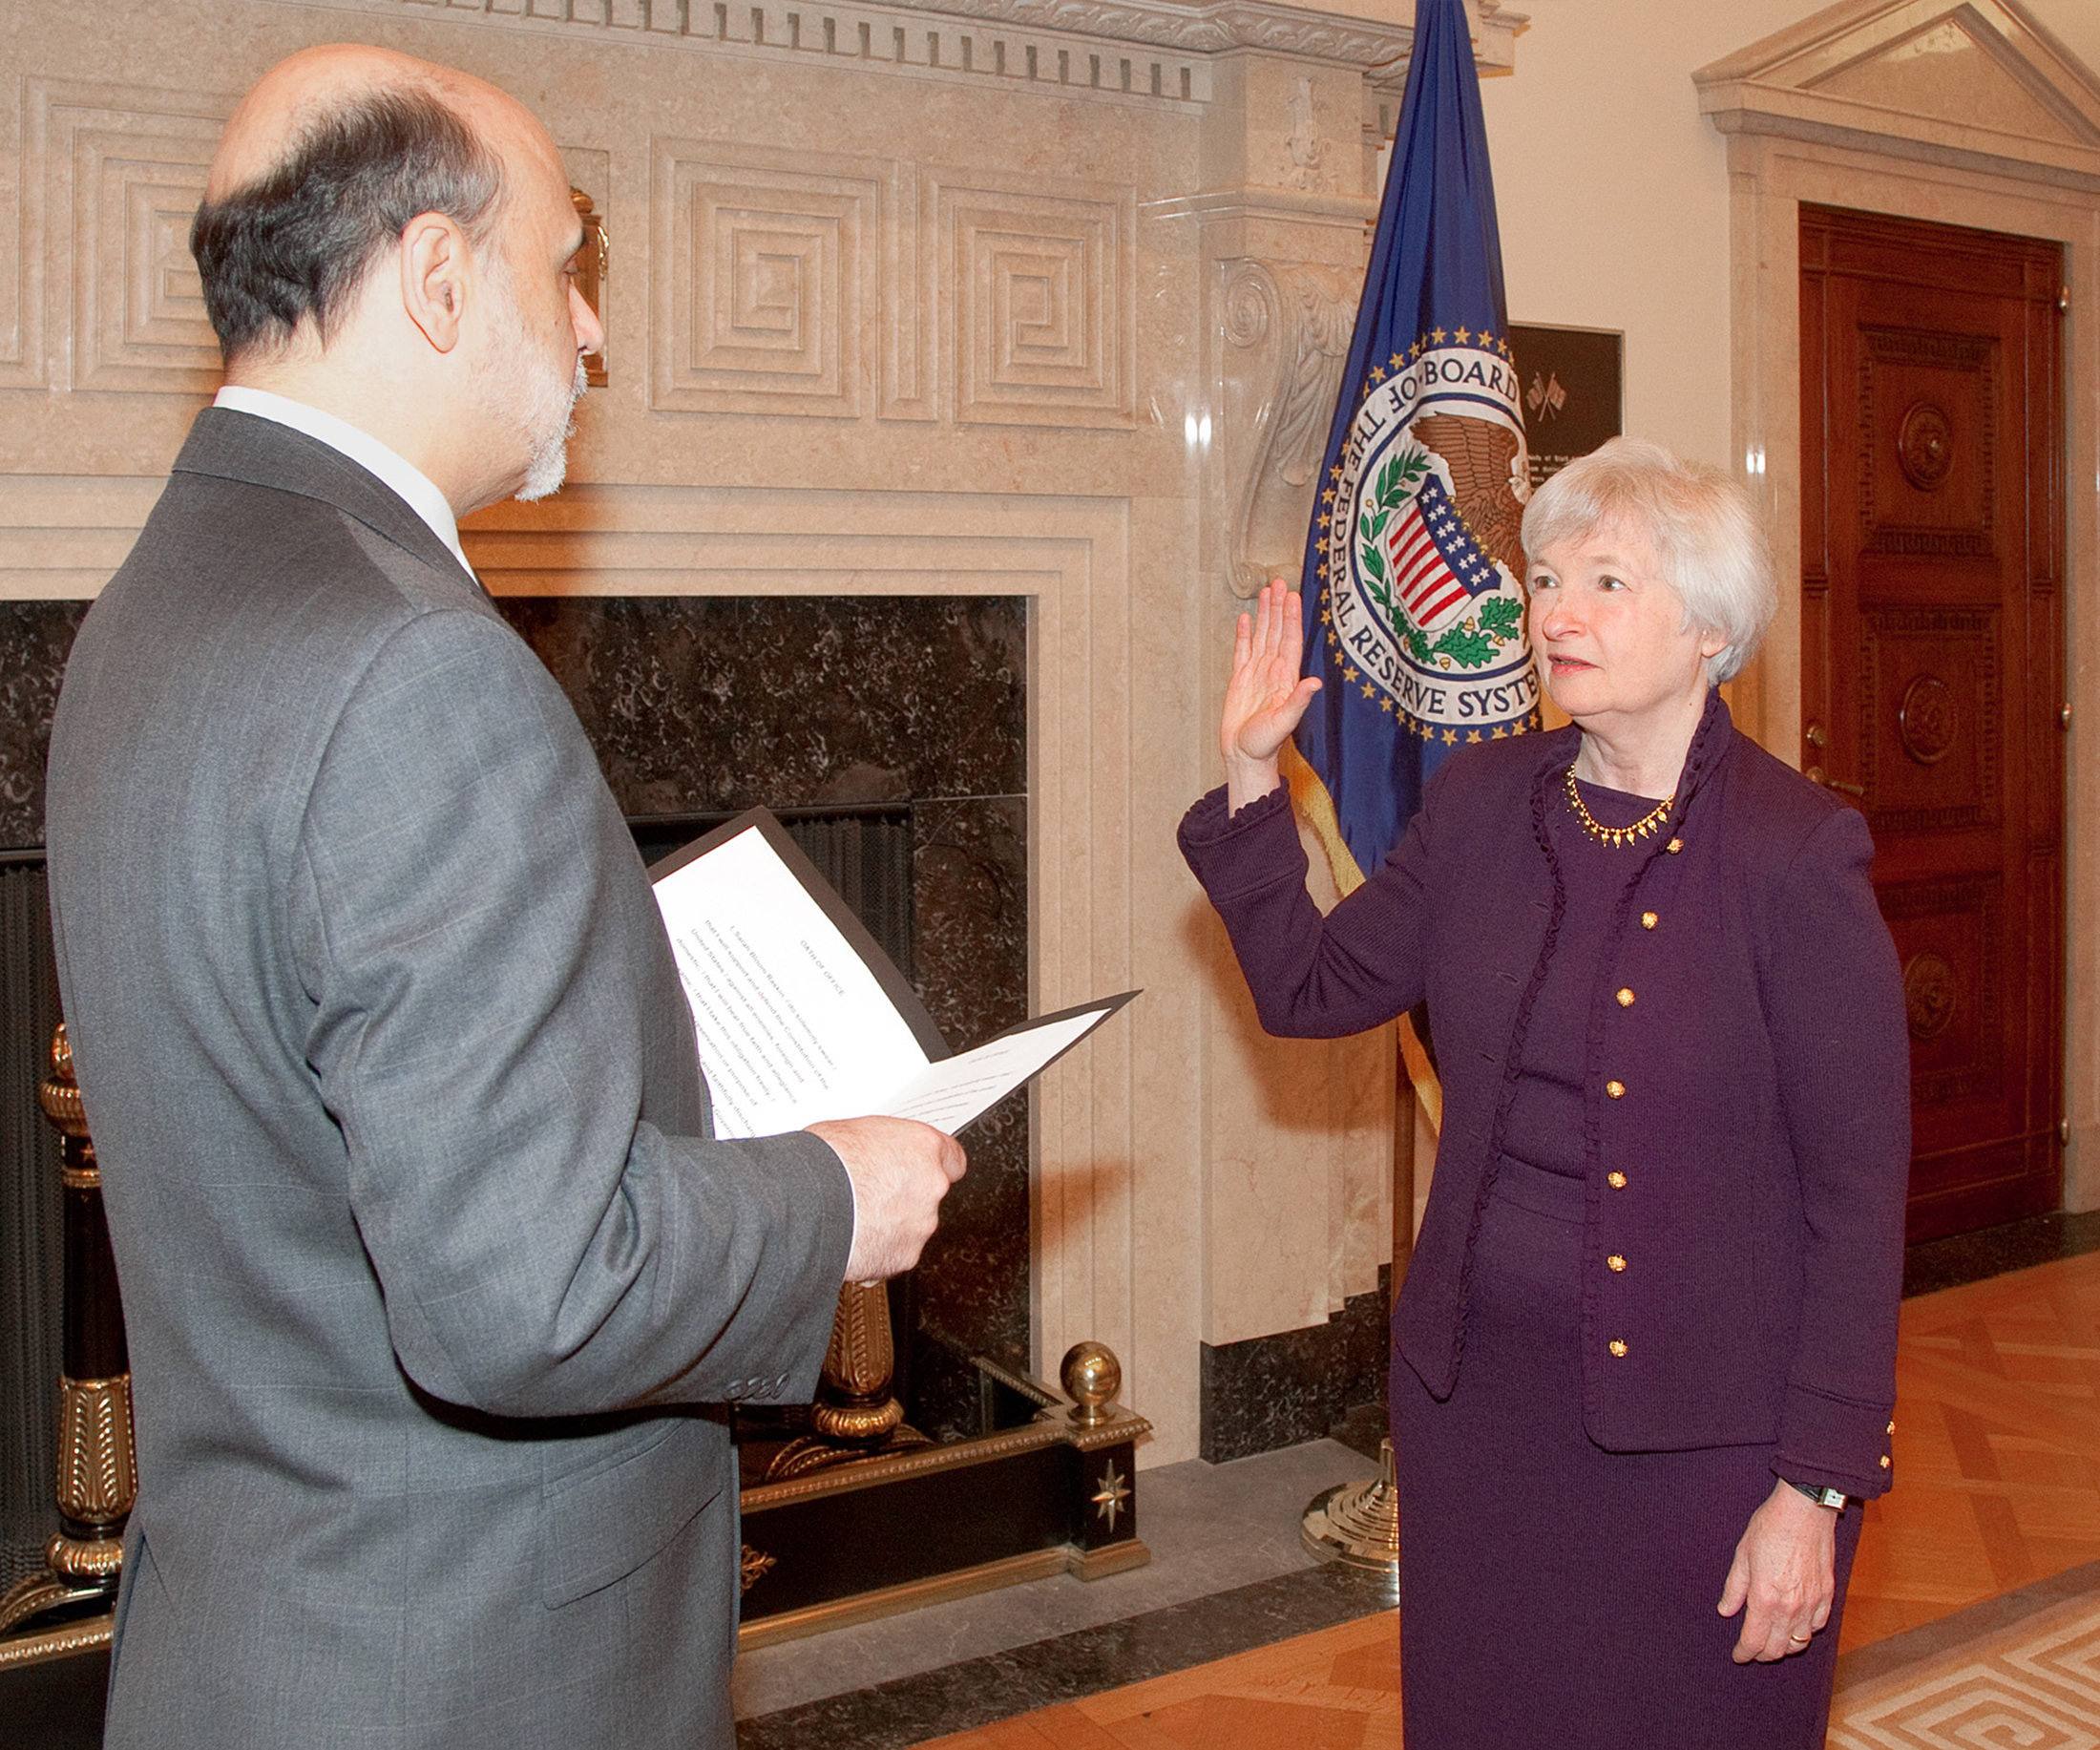 http://upload.wikimedia.org/wikipedia/commons/c/ca/Janet_yellen_swearing_in_2010.jpg